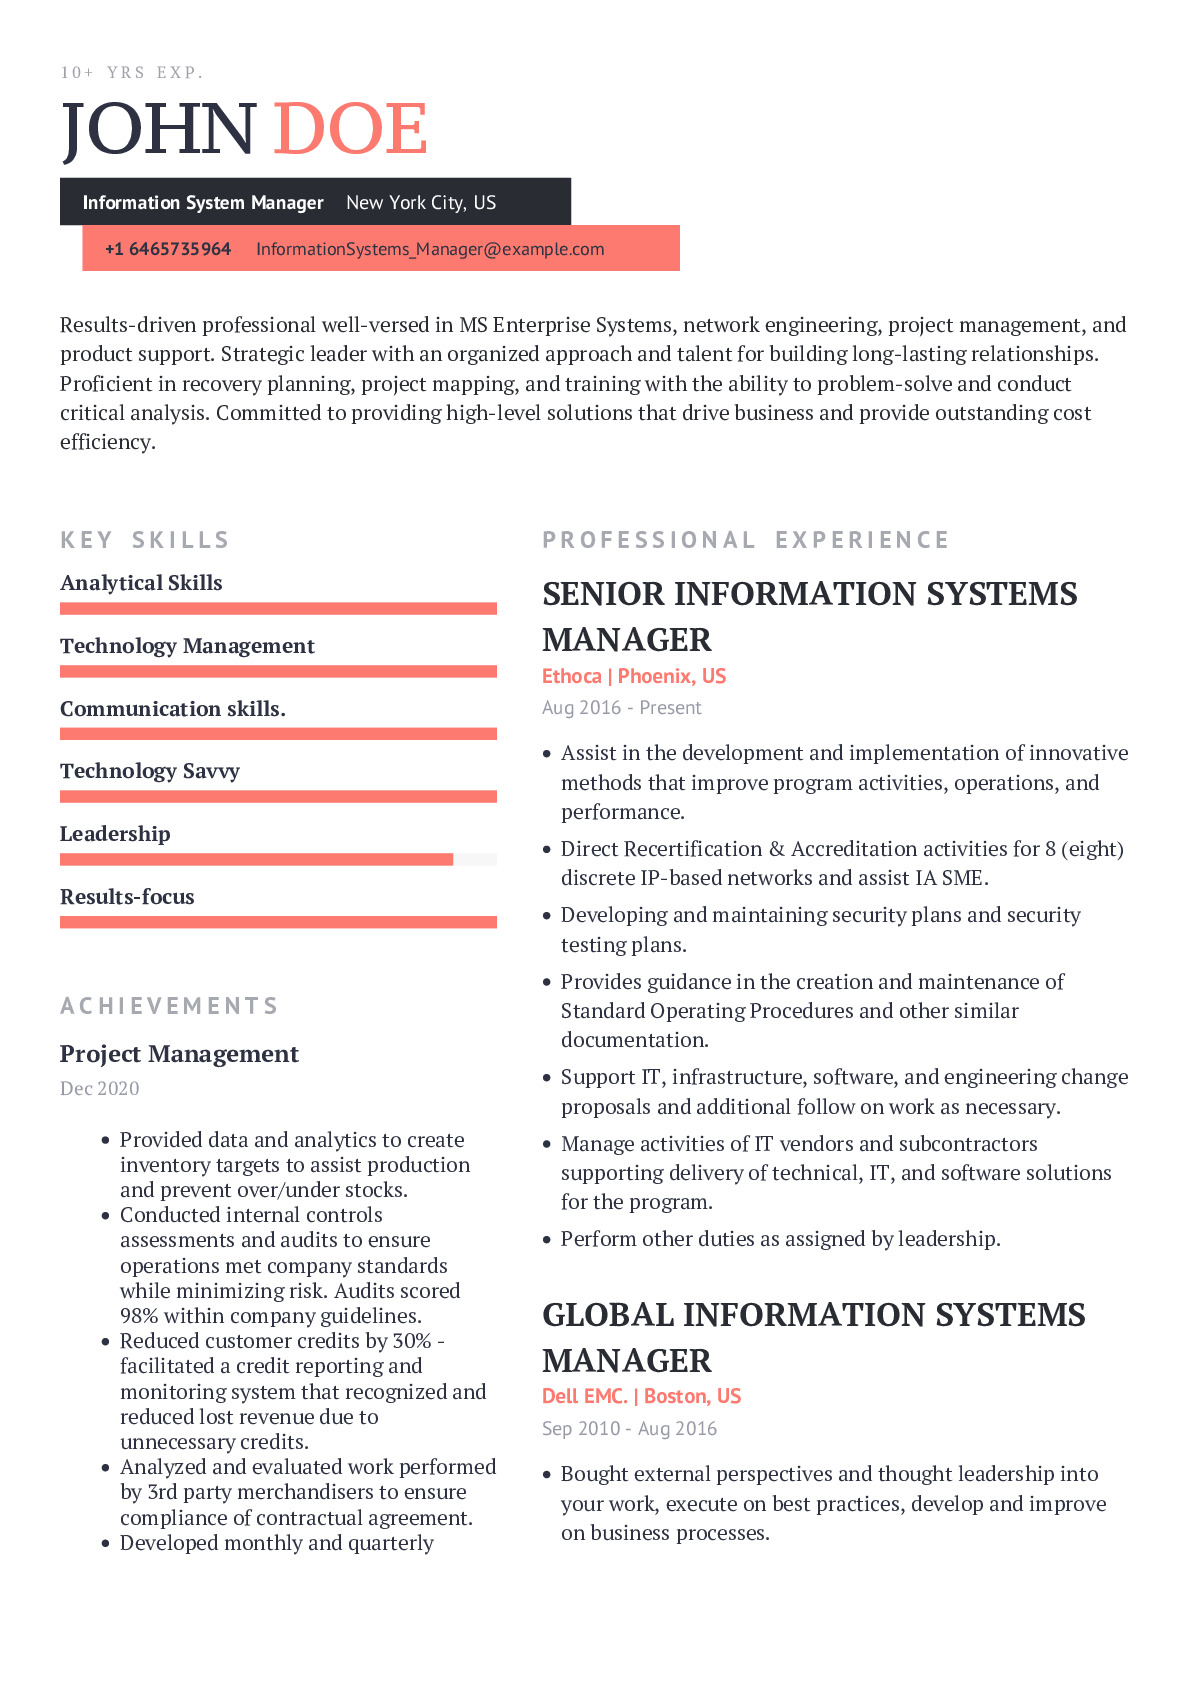 Information System Manager Resume Example